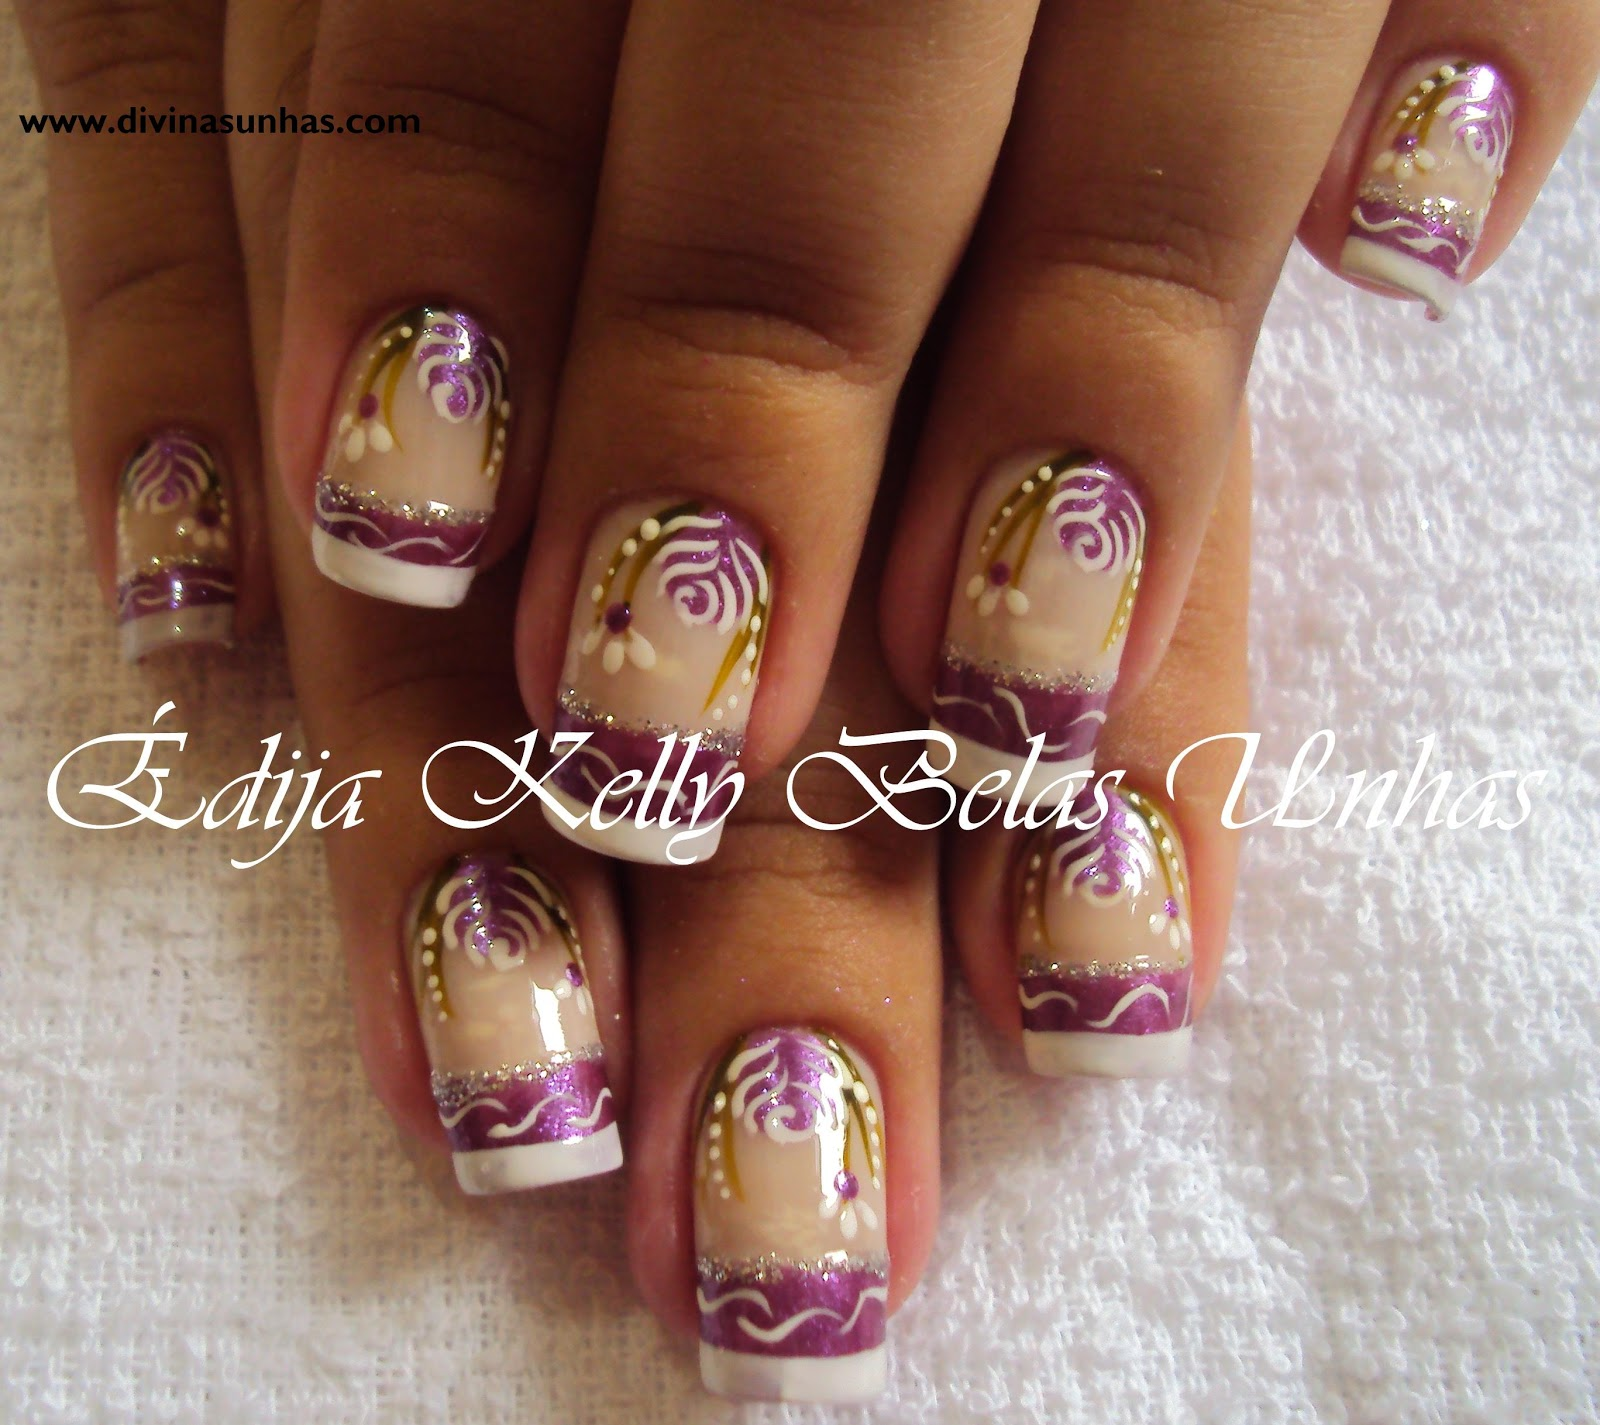 NOVE FOTOS DE UNHAS DECORADAS DE EDIJA KELLY